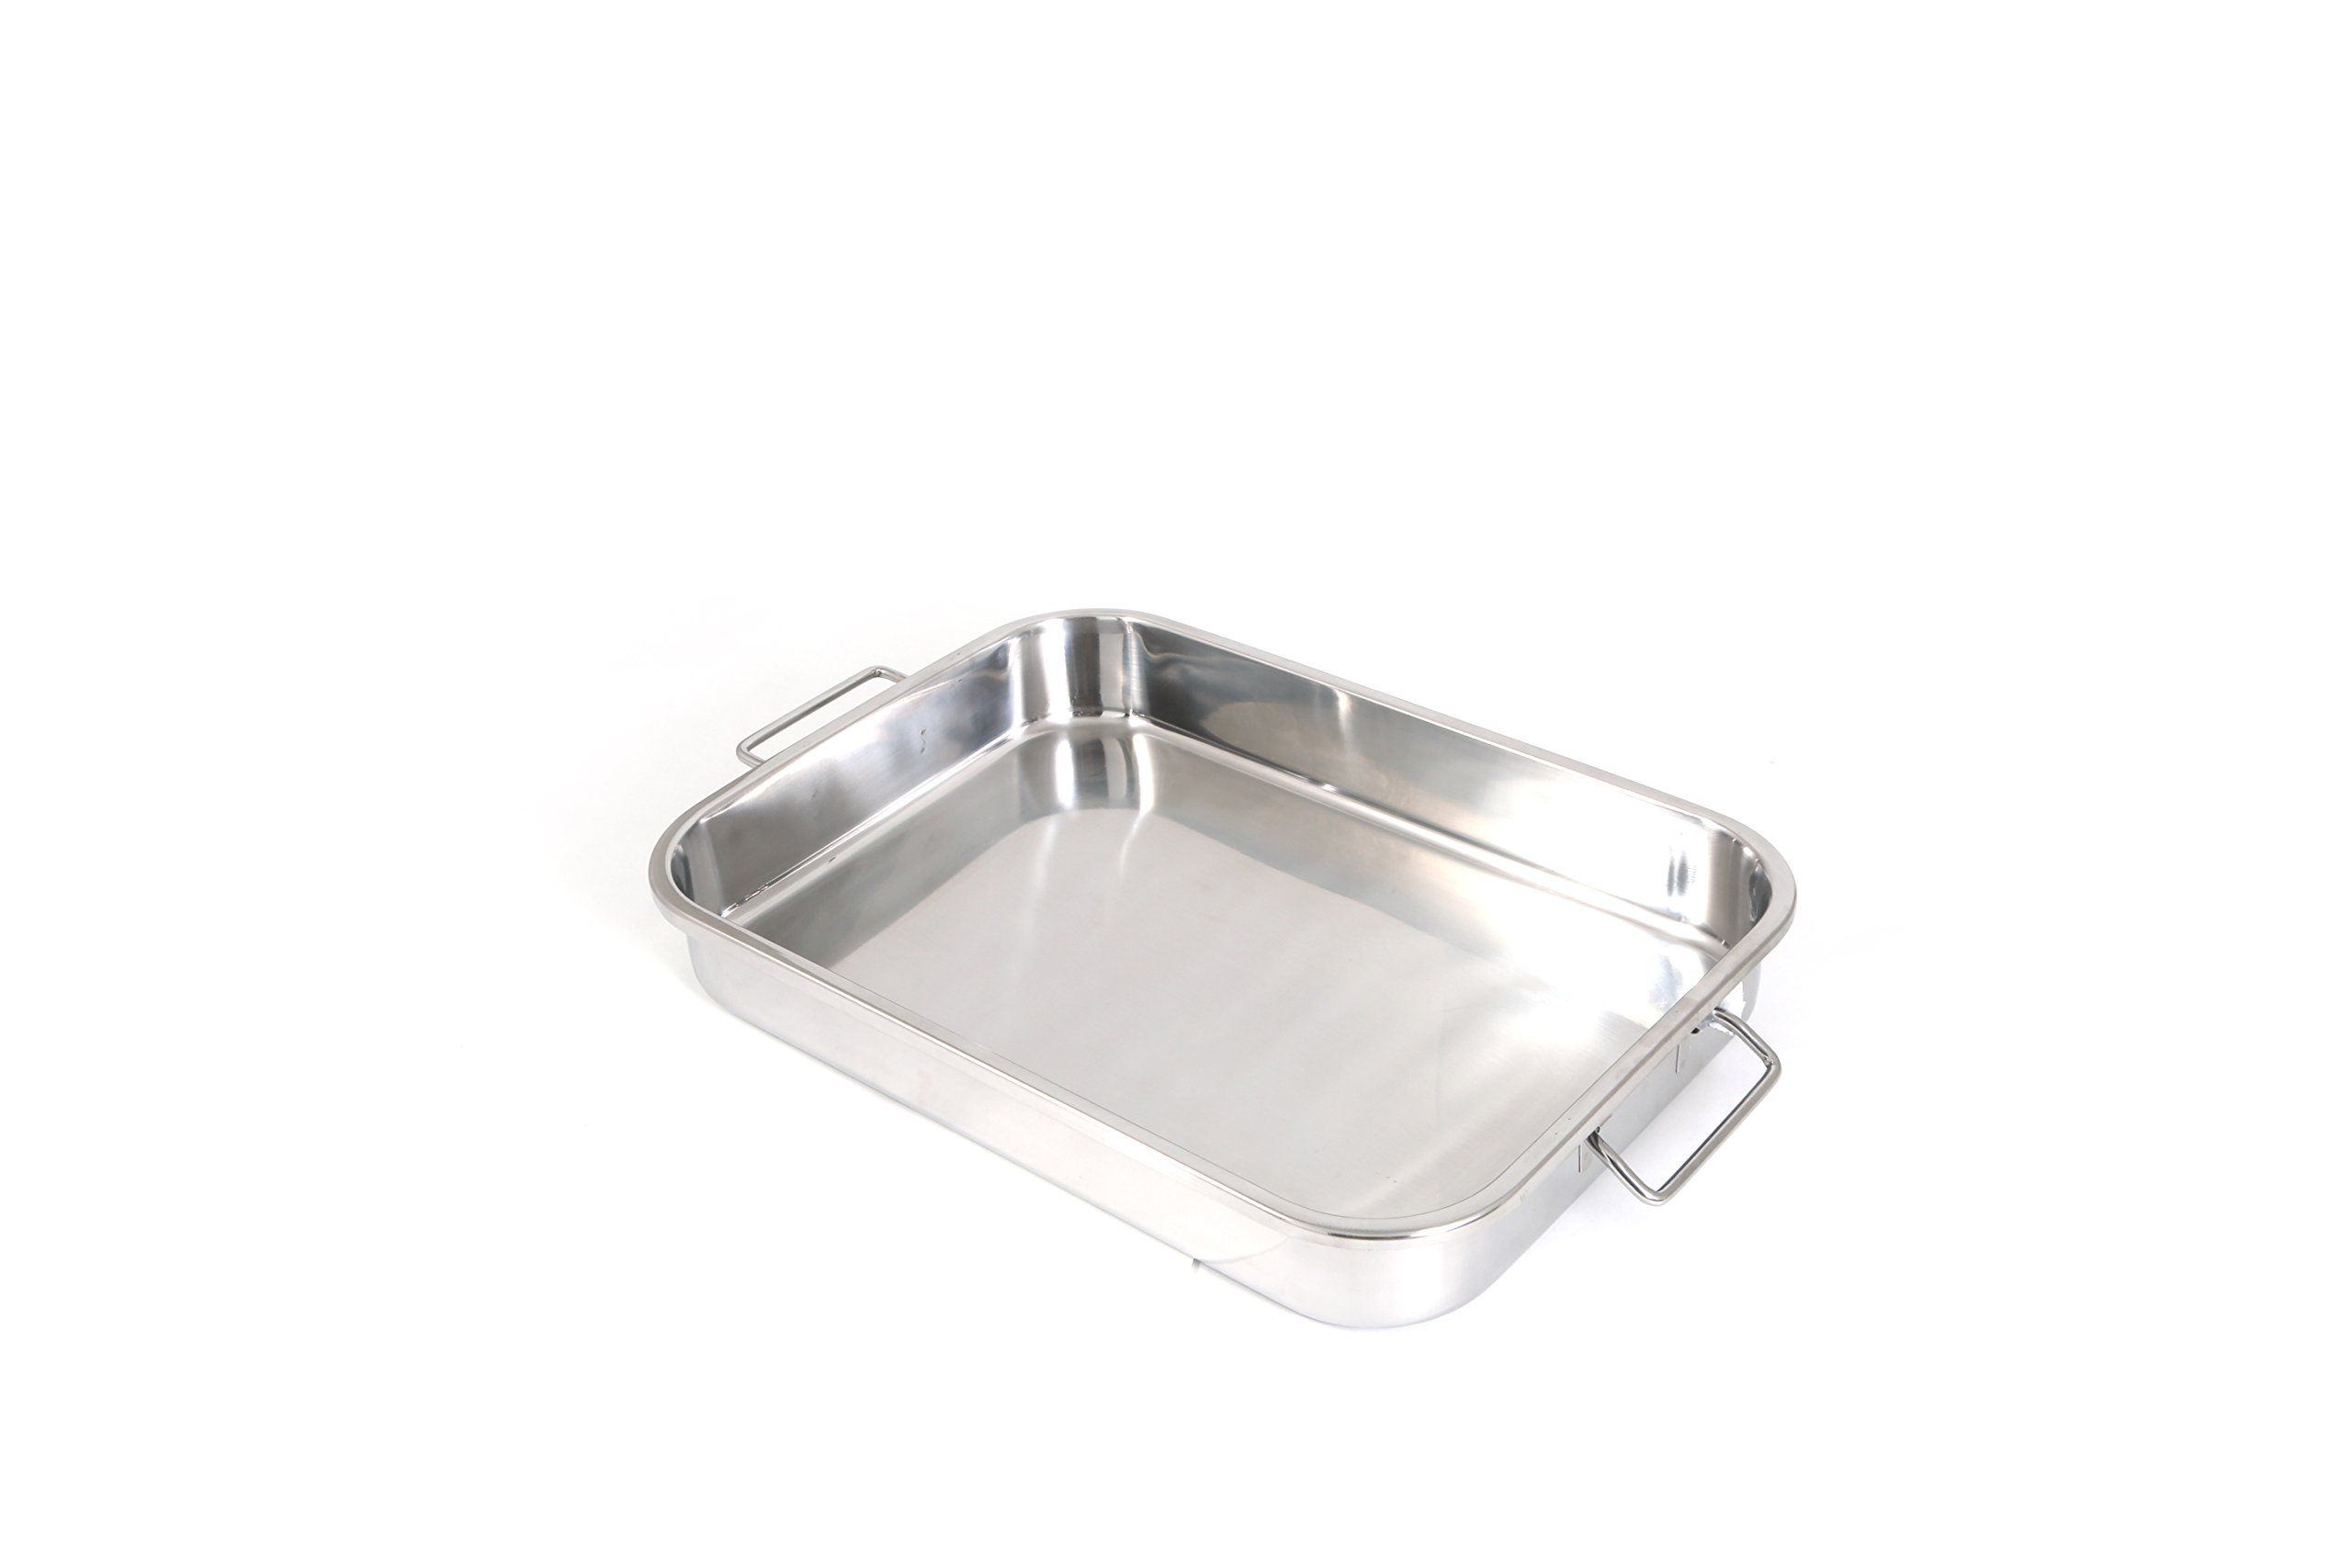 Cook Pro 561 4-Piece All-in-1 Lasagna and Roasting Pan by Cook Pro (Image #6)